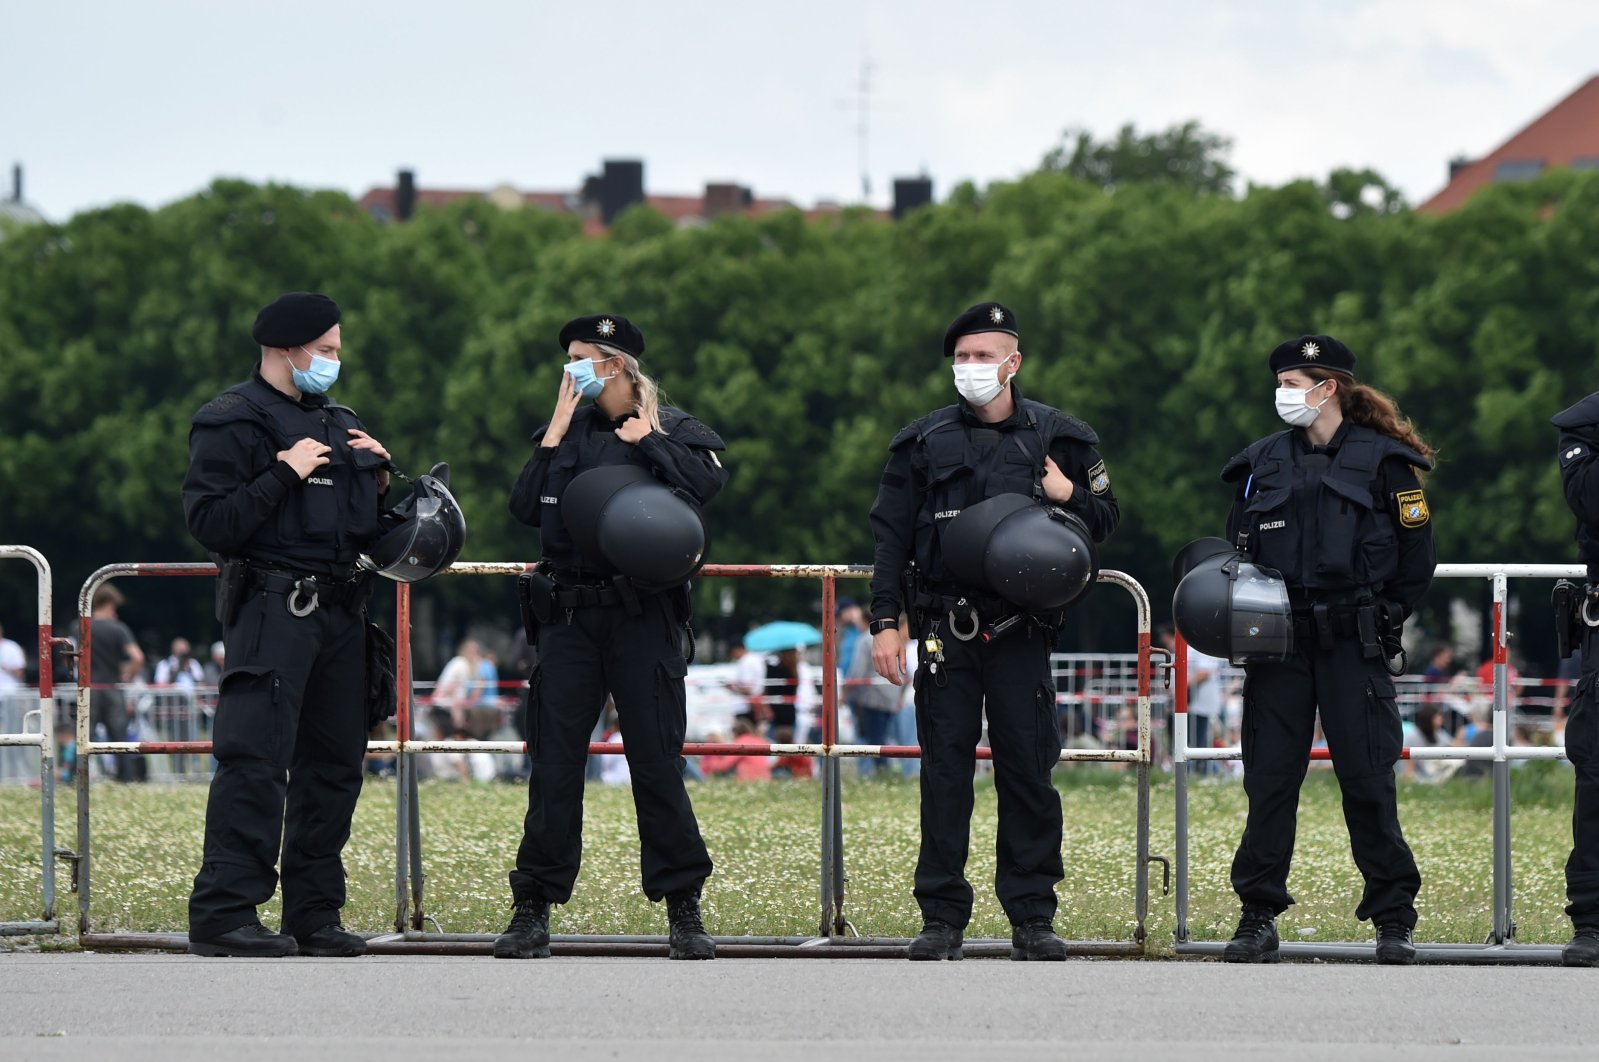 Police officers stand guard in front of a demonstration, Munich, Germany, May 23, 2020. (AFP Photo)